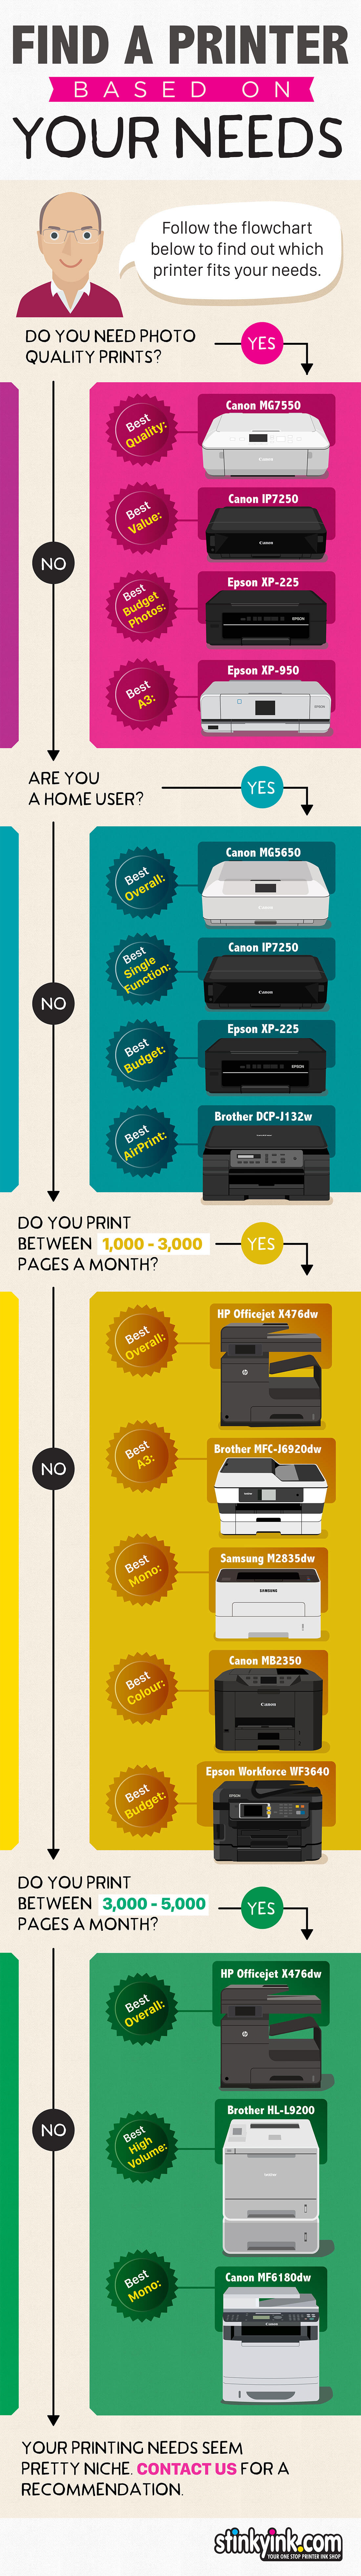 Find a printer based on your needs a685d5a66511b246a2341374ad9bce39b6c114c714a4648eca1d27814738ab0c